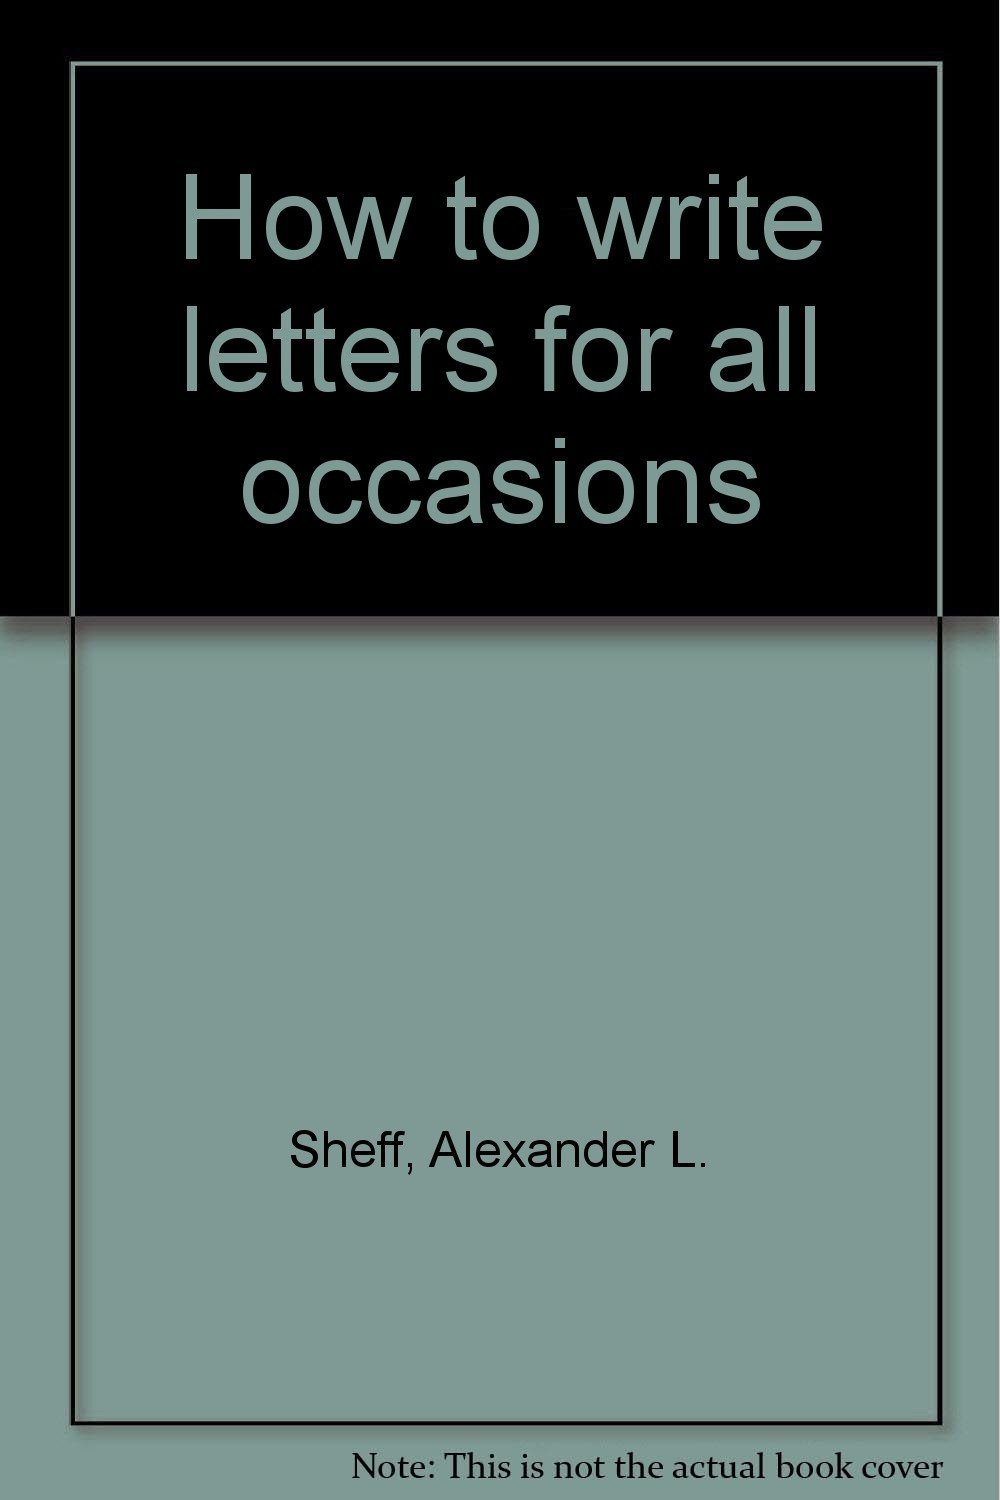 How to write letters for all occasions by Sheff, Alexander L.